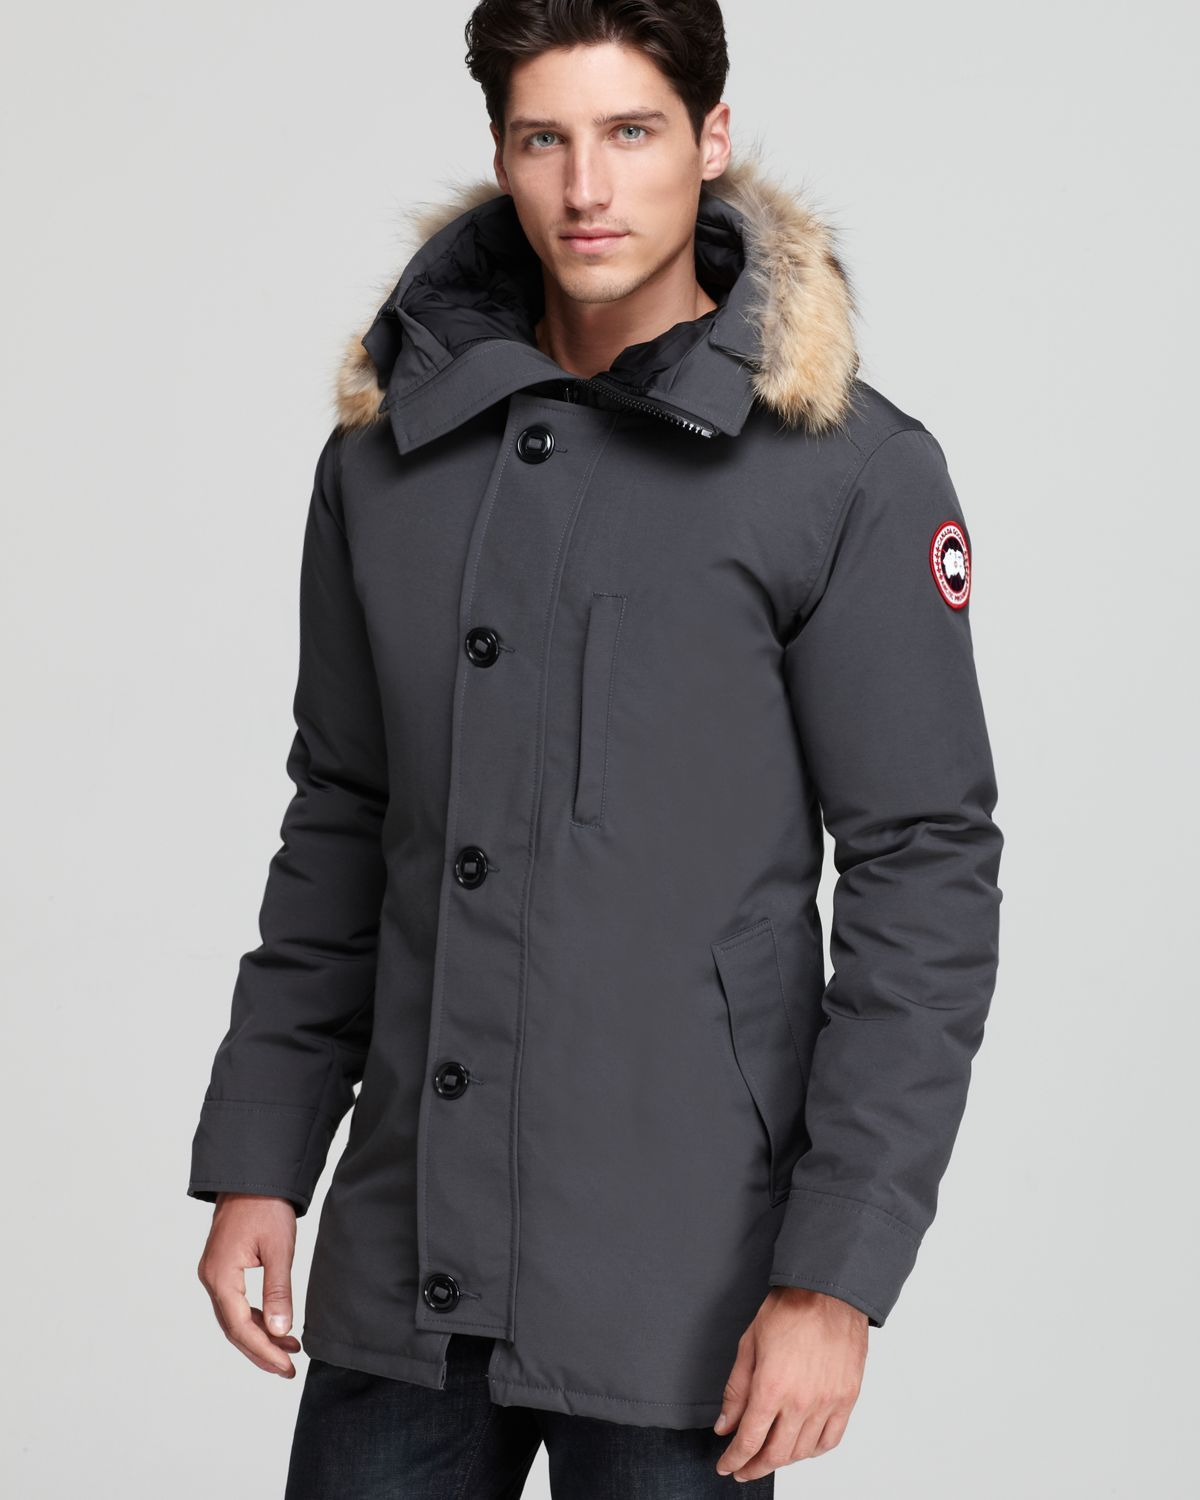 Canada Goose Chateau Parka With Fur Hood In Gray For Men Graphite